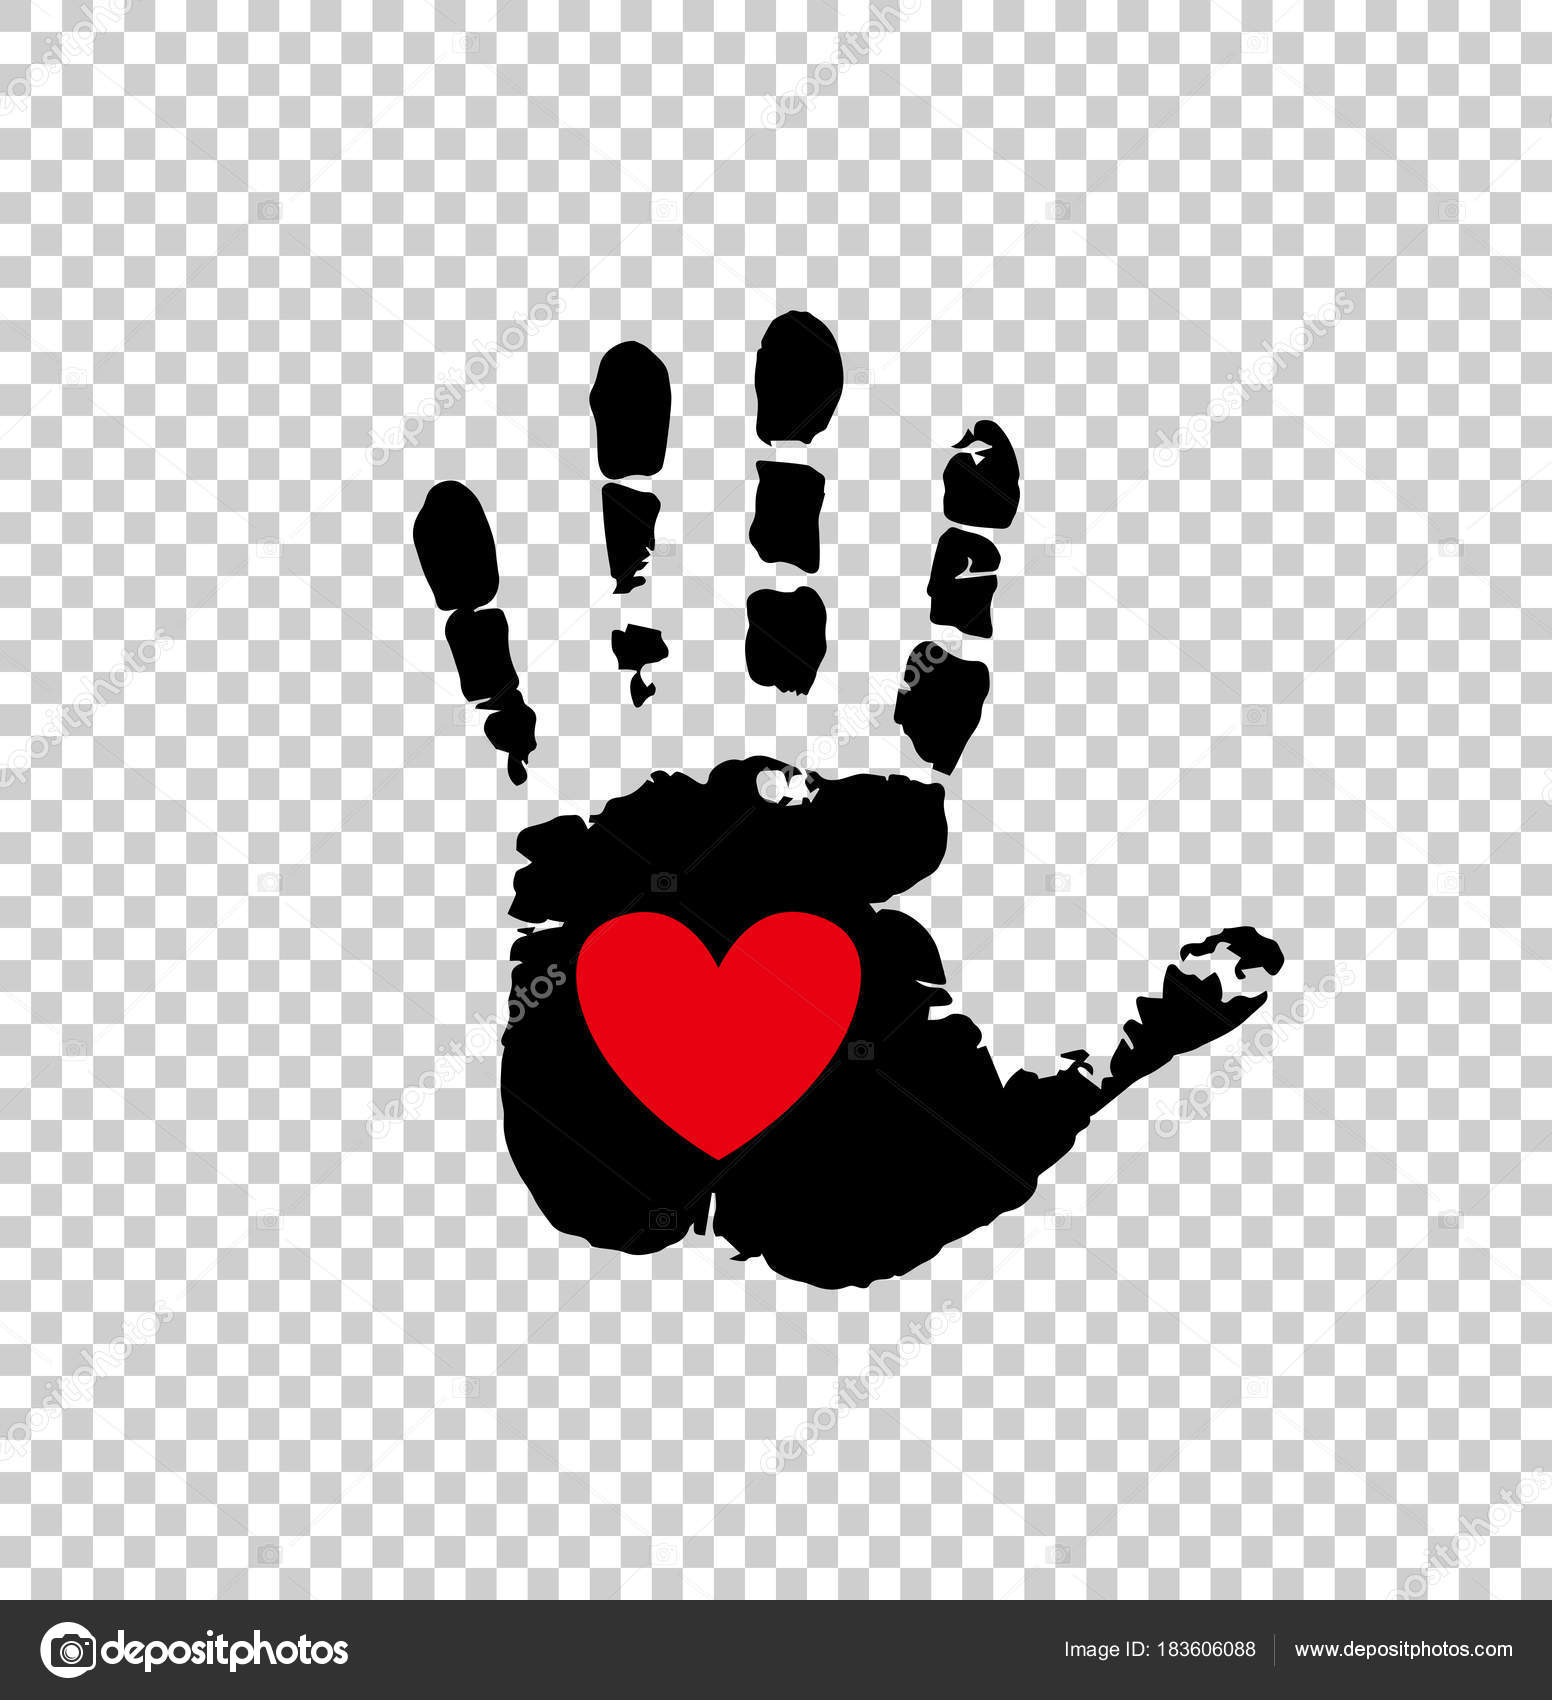 Red heart in black palm print isolated on transparent stock black silhouette of humans hand print with heart symbol in open palm isolated on transparent background vector illustration icon logo clip art buycottarizona Gallery